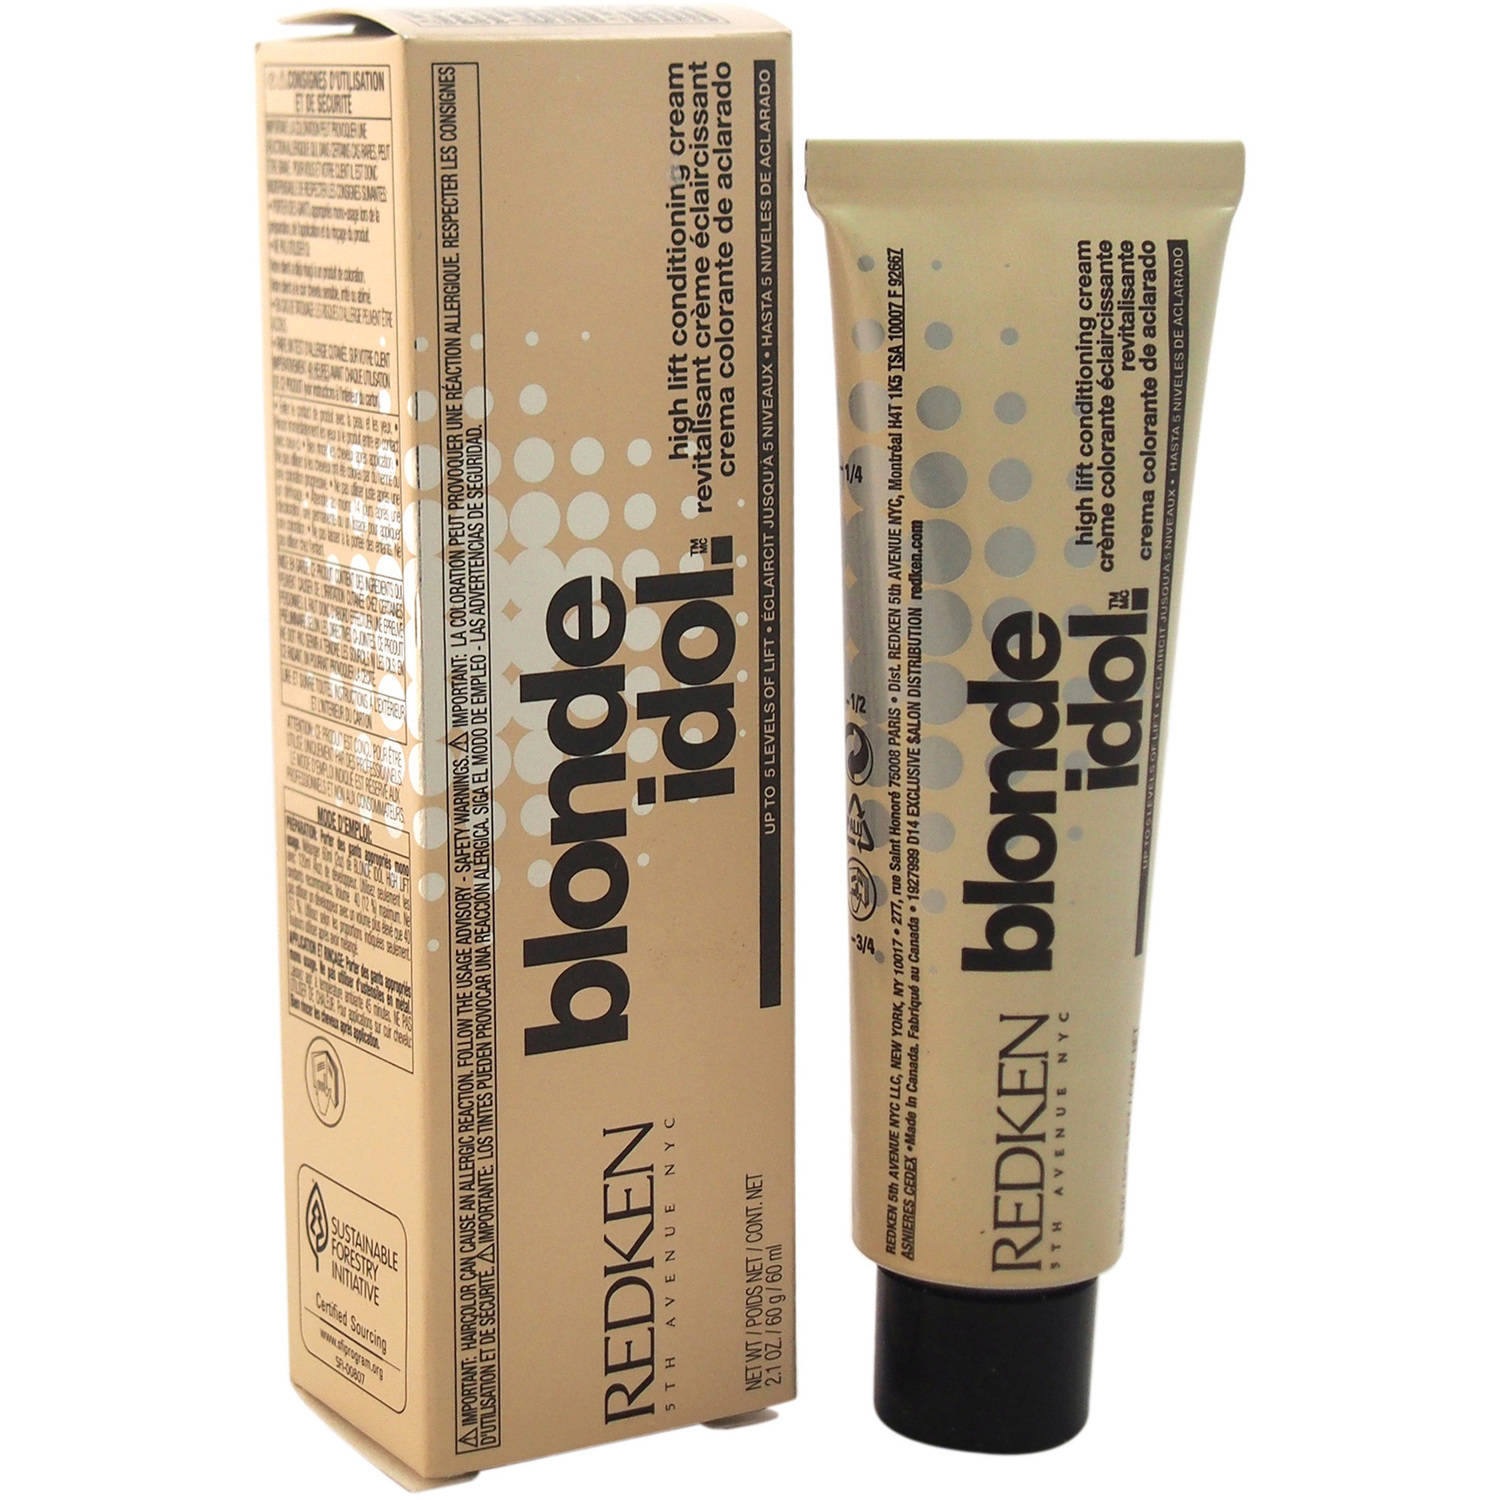 Blonde Idol High Lift Conditioning Cream Base - 3-5t/Titanium by Redken for Unisex, 2.1 oz